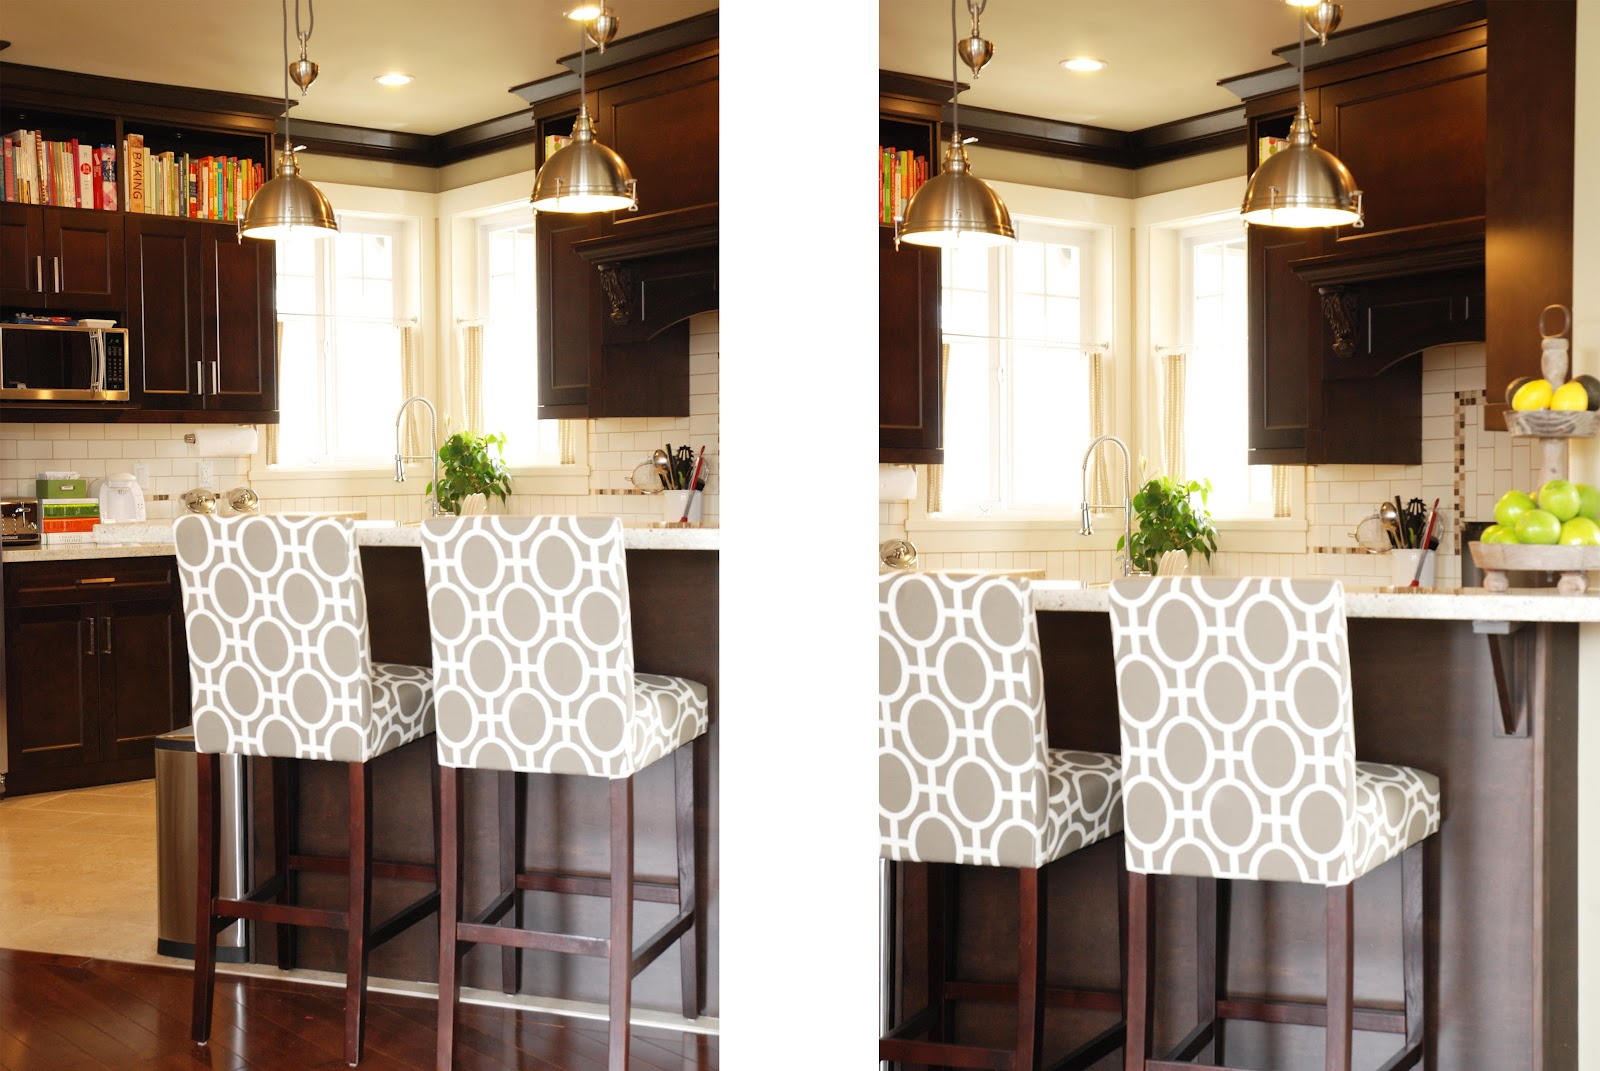 Kitchen breakfast bar stools | | Kitchen ideas